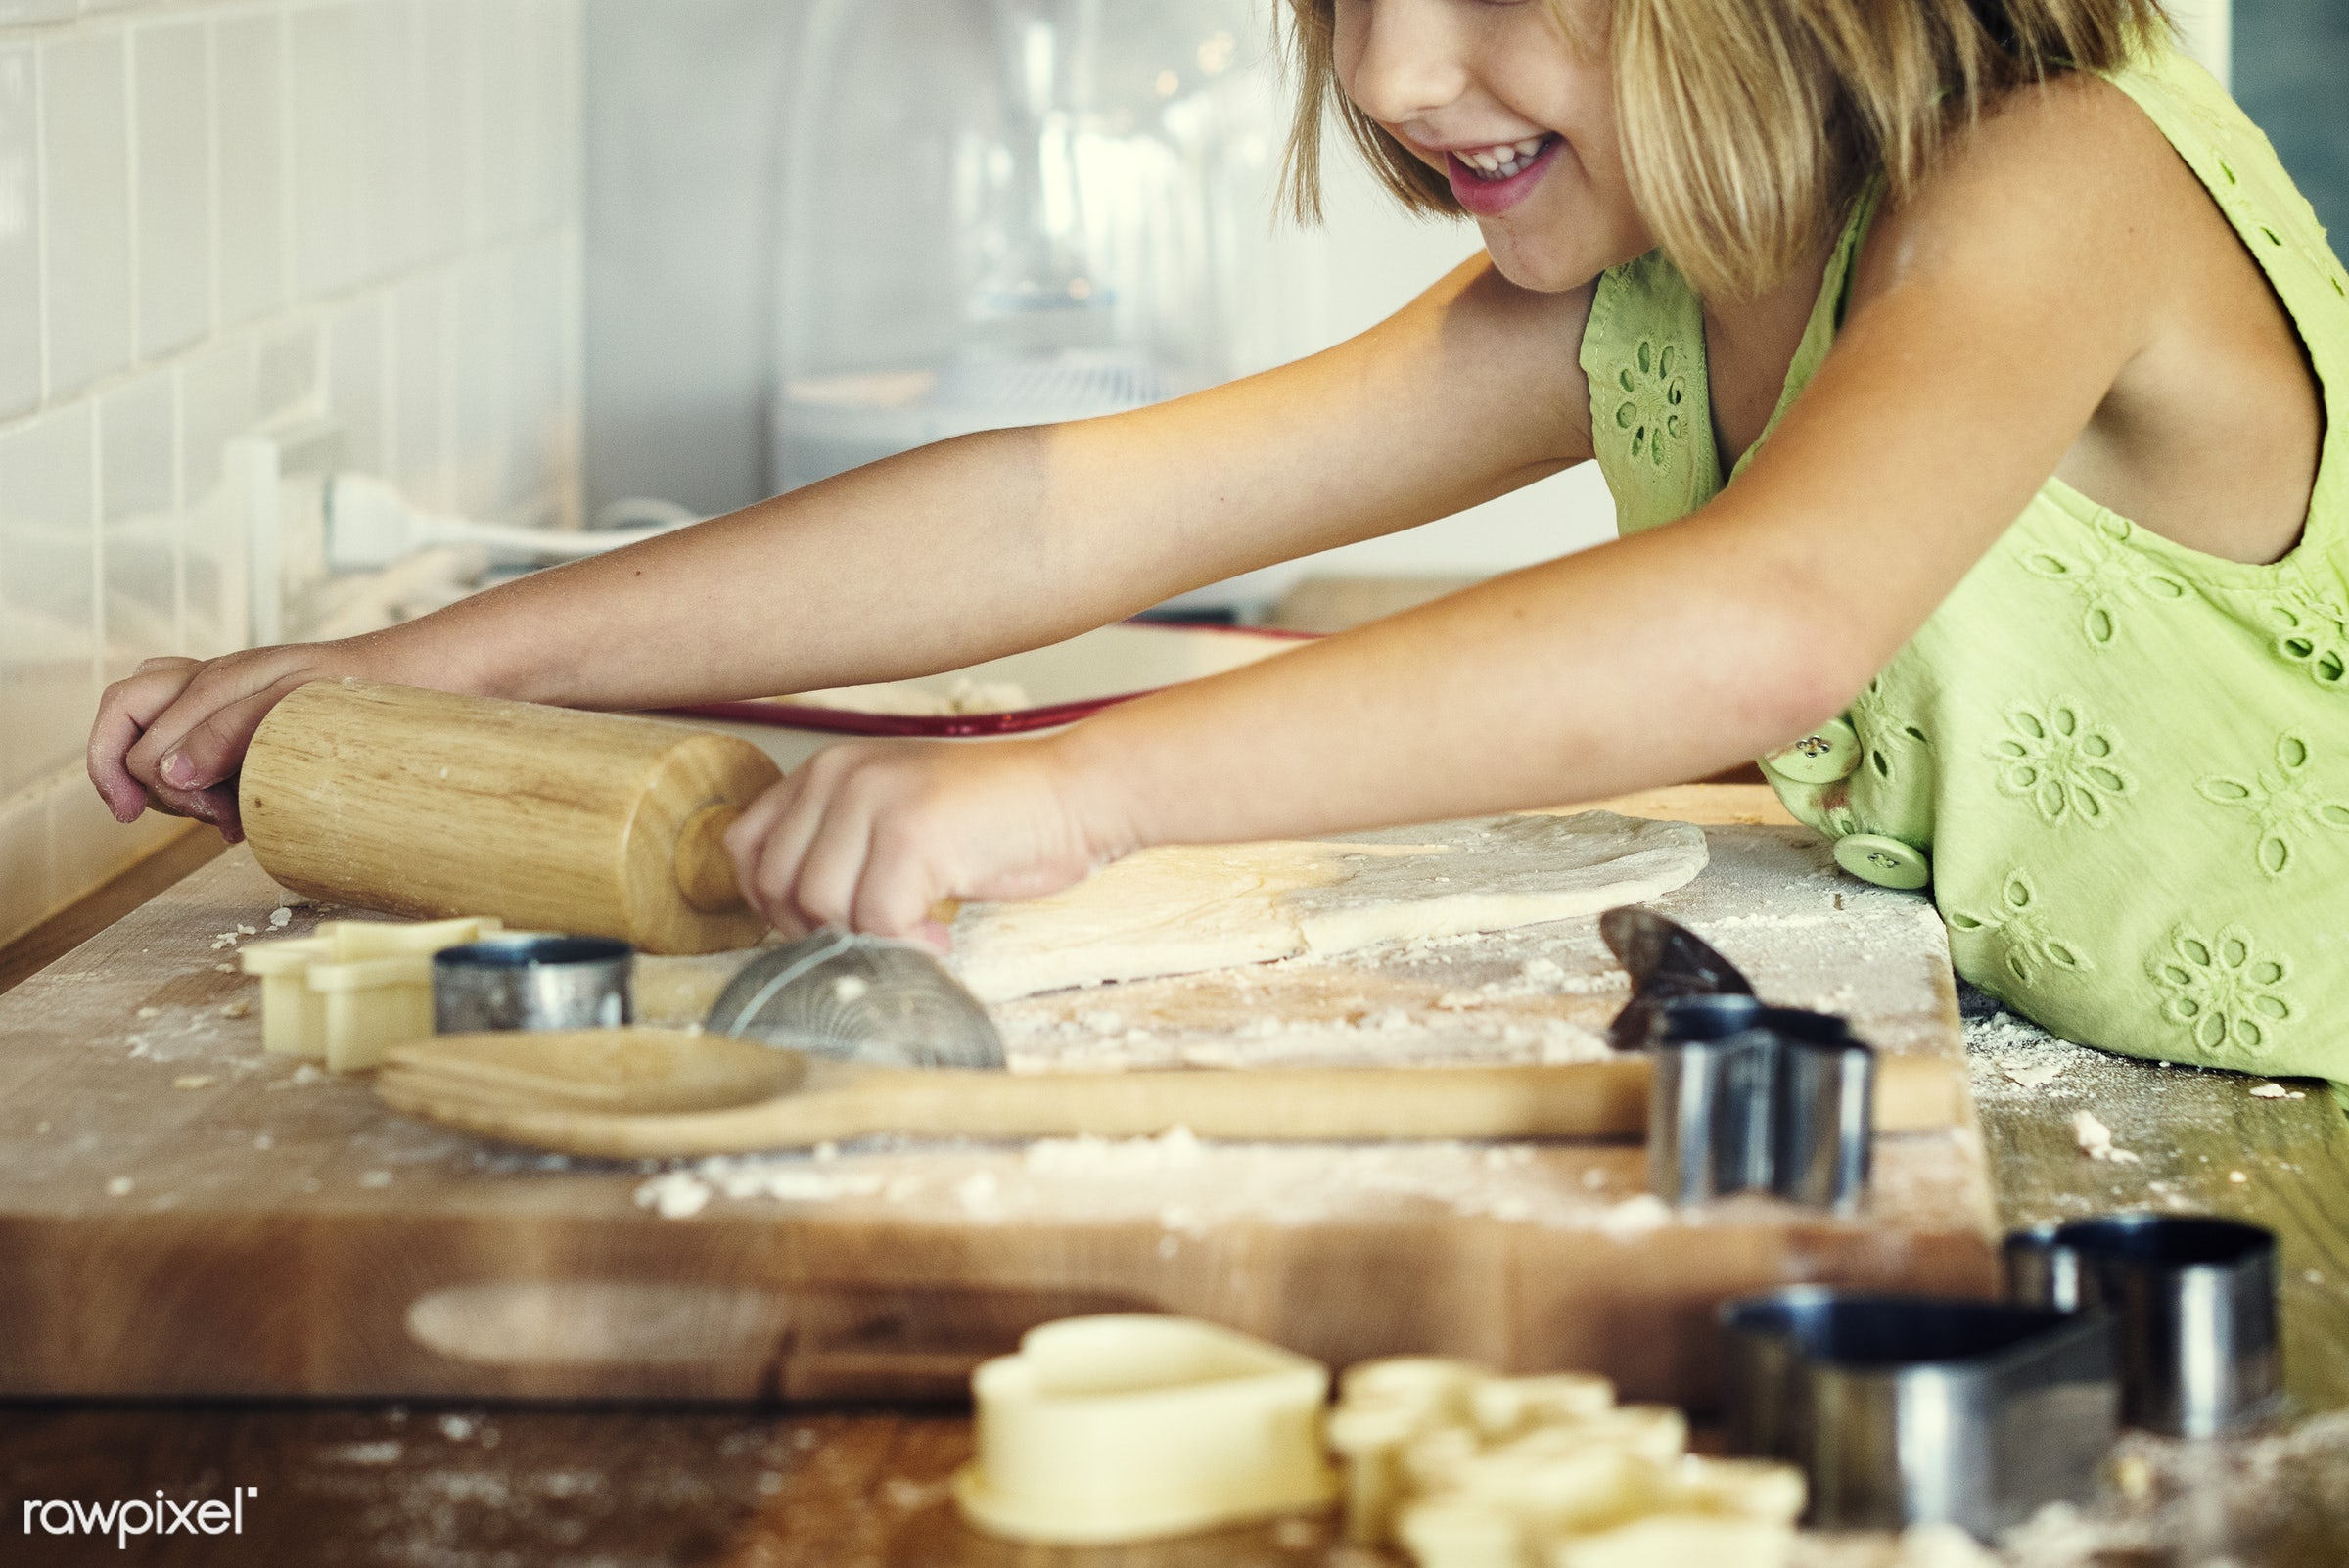 activity, alone, american, bake, baker, bakery, baking, blond, caucasian, cheerful, child, cook, cookies, daughter, dessert...